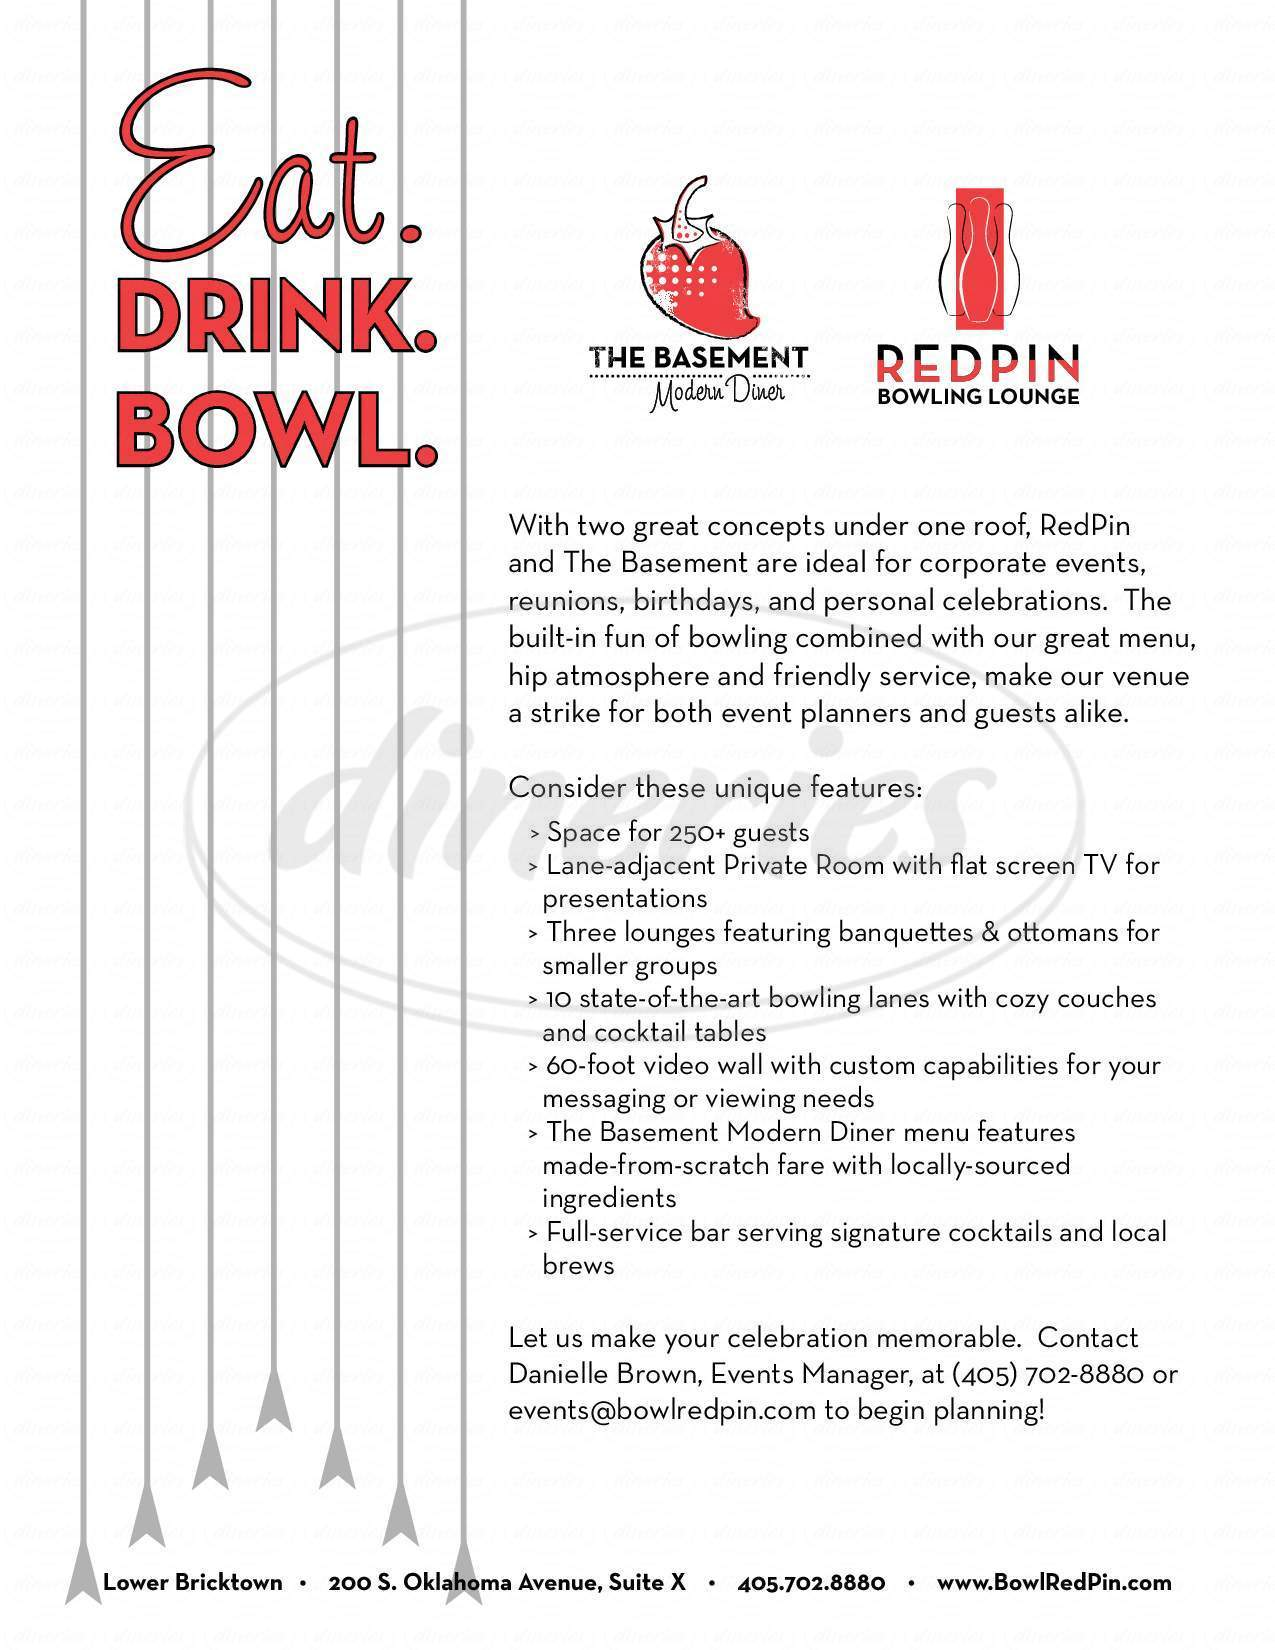 RedPin Restaurant & Bowling Lounge Big Menu Oklahoma City Dineries